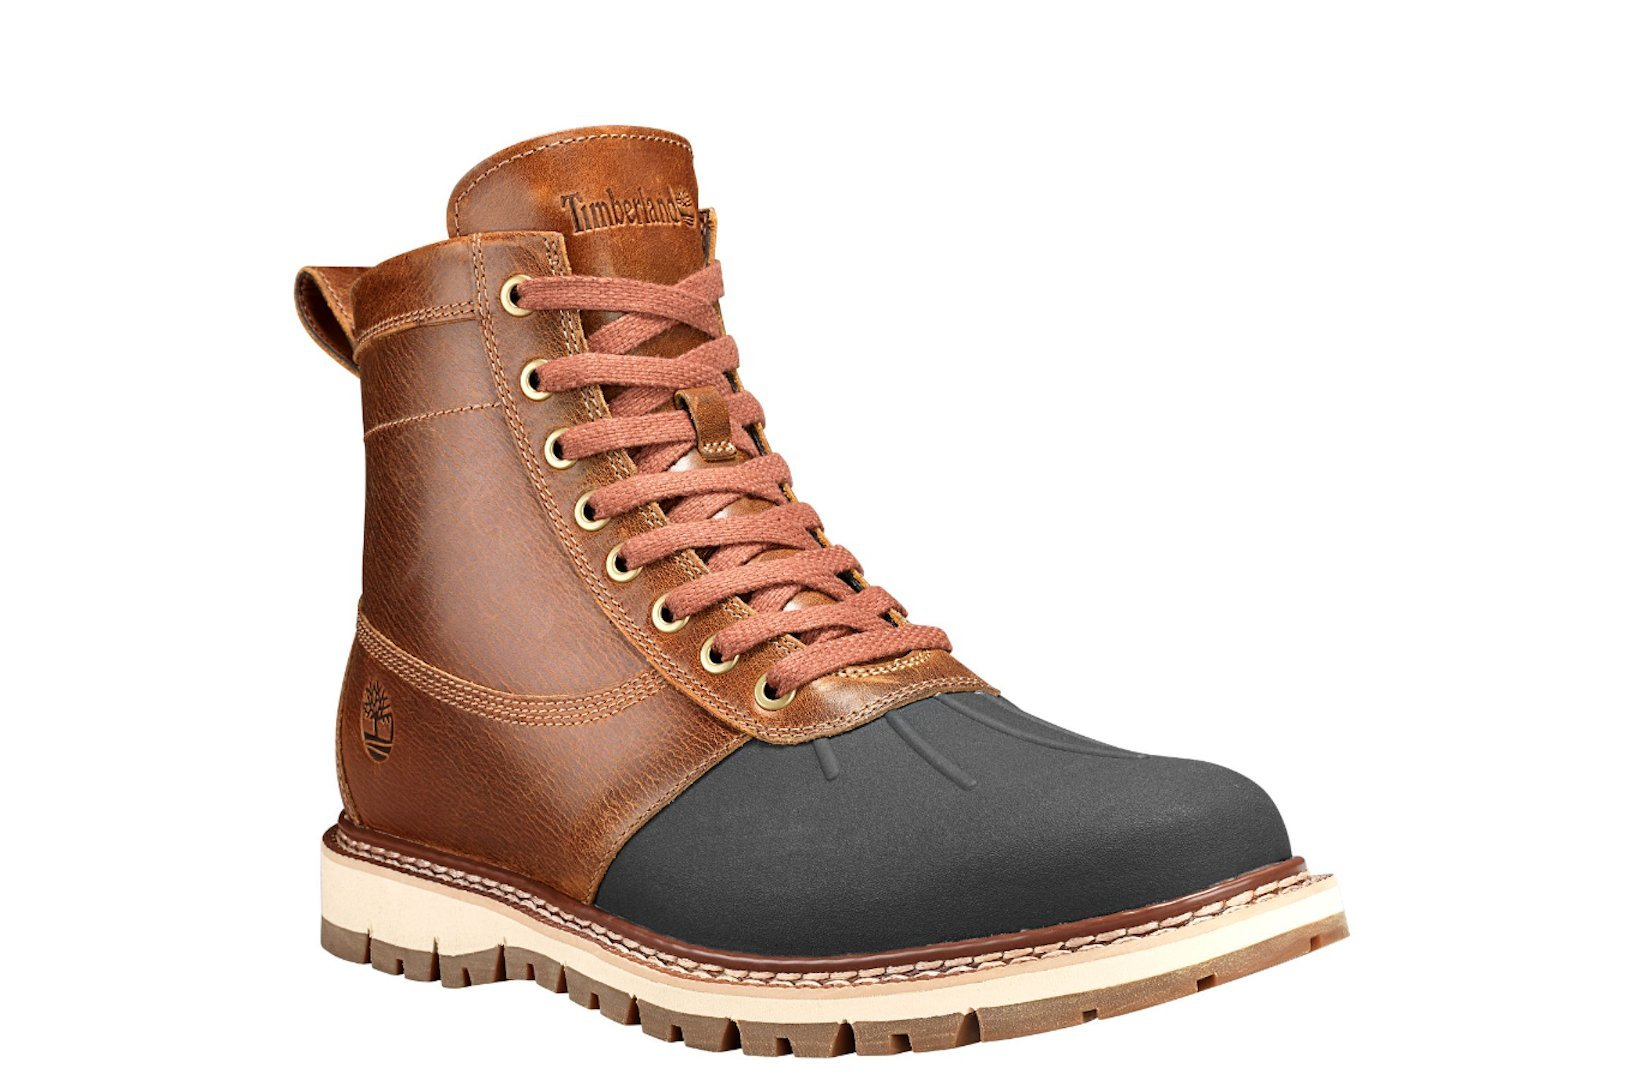 Timberland Men's Britton Hill Moc-Toe Waterproof Boot (9.5 D(M) US, Brown)